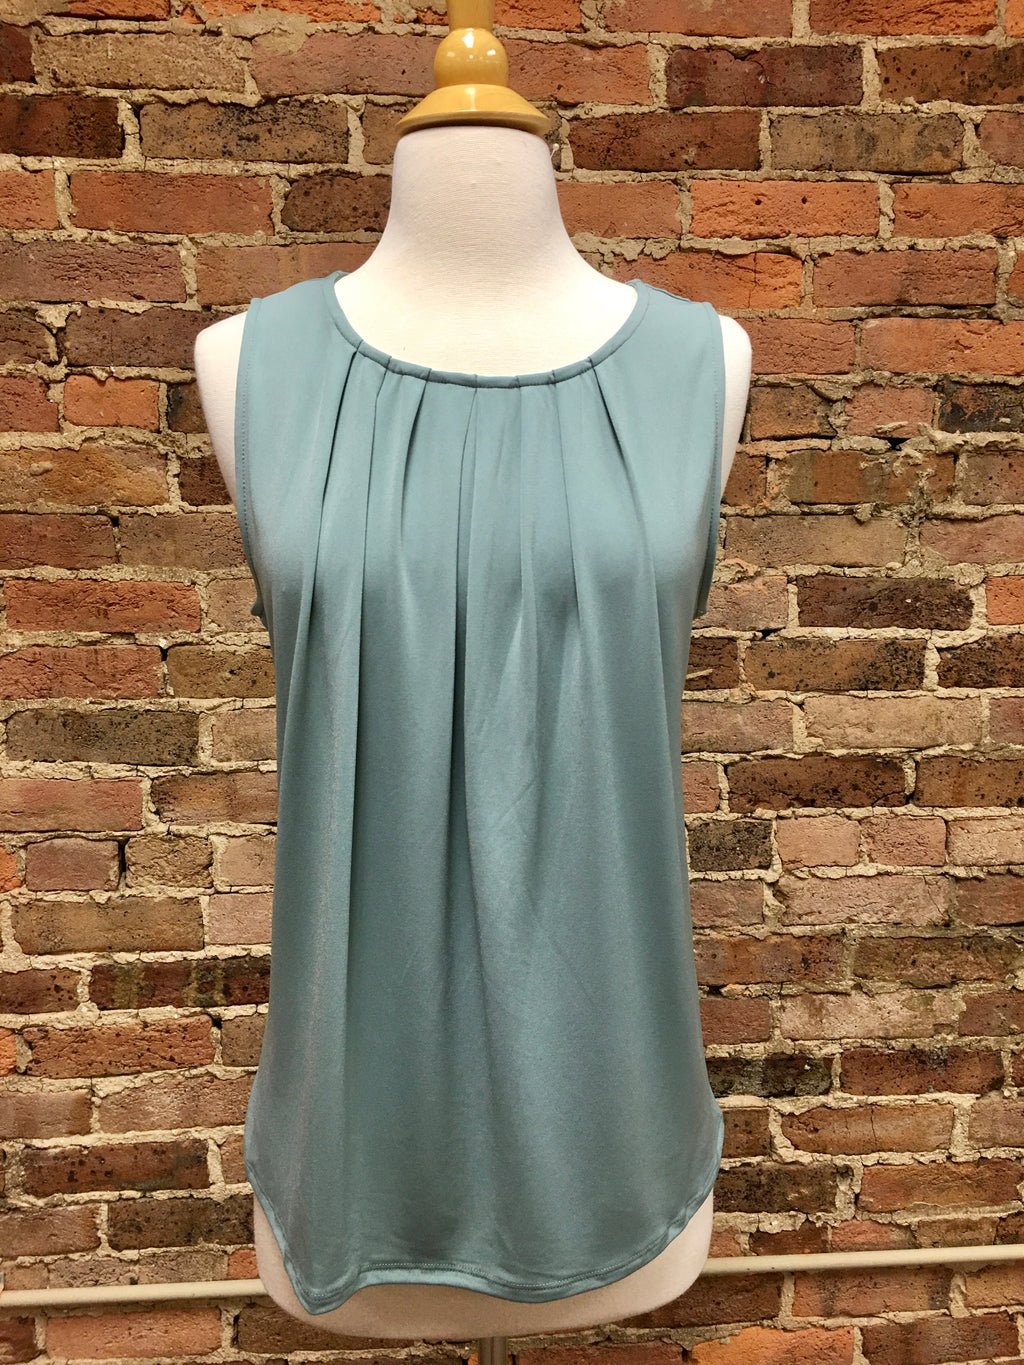 Dusty Teal Sleeveless Top